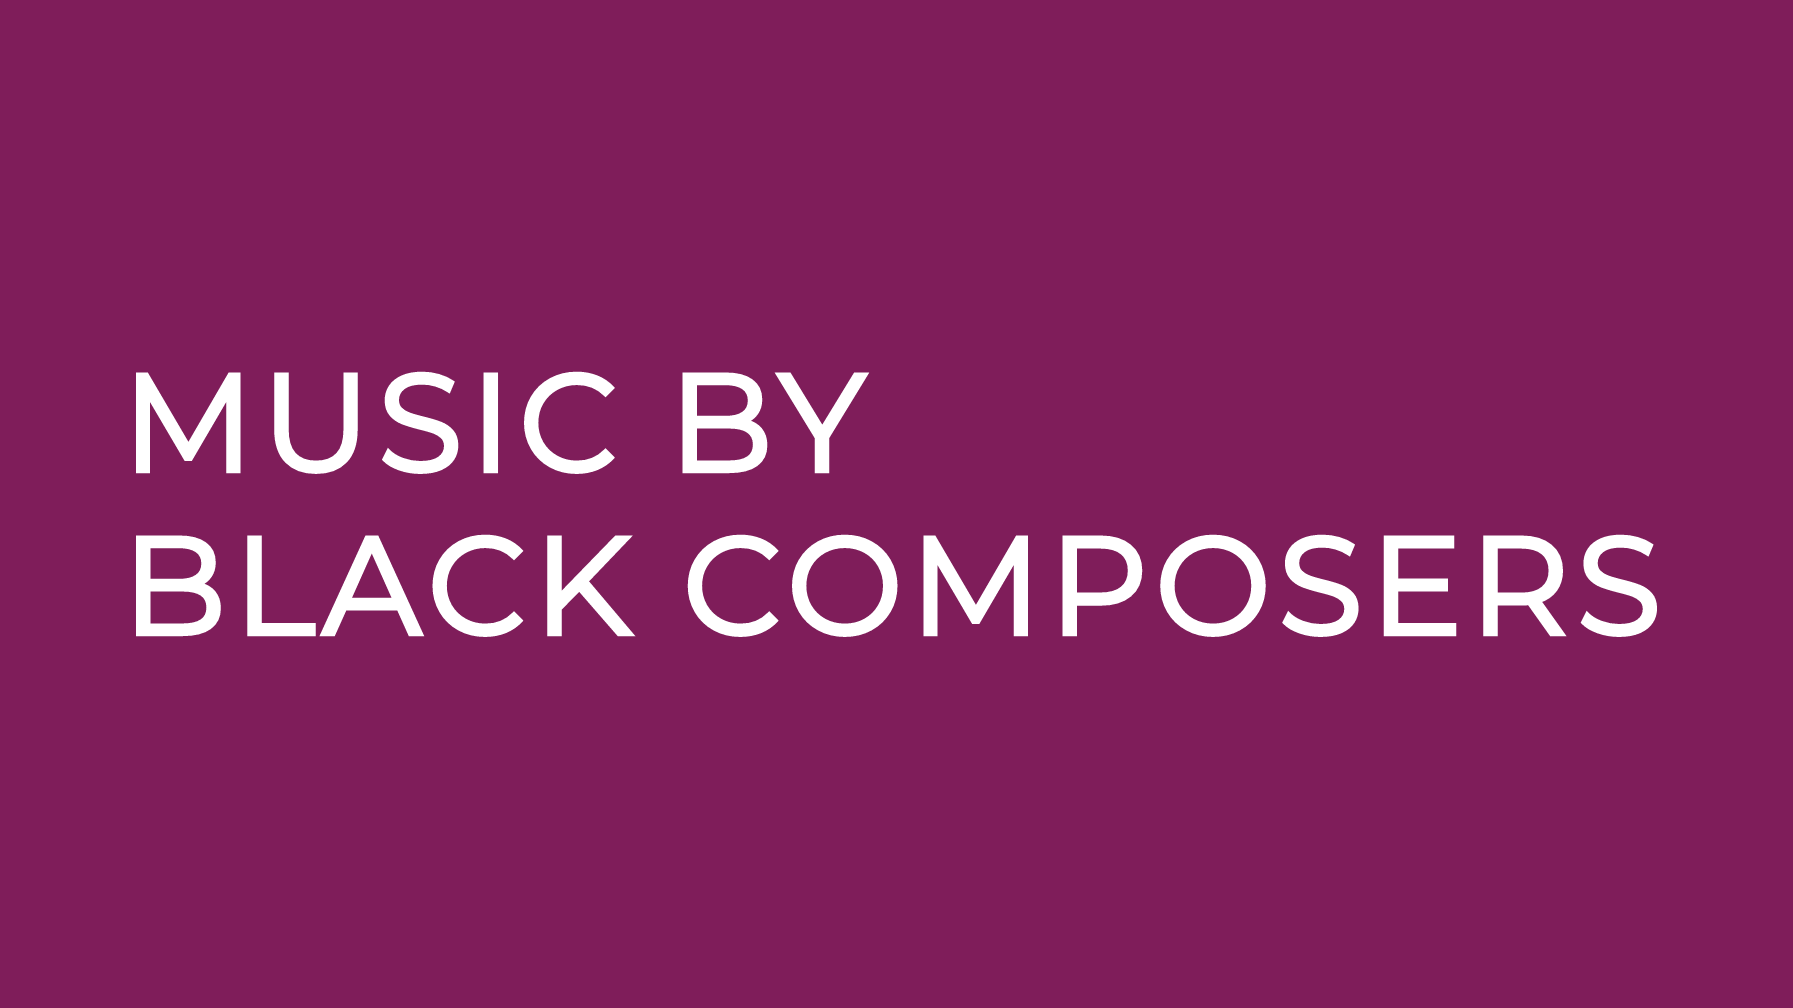 Founded by violinist Rachel Barton Pine, this organization seeks to bring awareness to the classical literature of Black composers and to inspire Black students to engage in the classical music landscape. The Living Composer Directory resource is an especially valuable tool for those looking to program diverse voices.